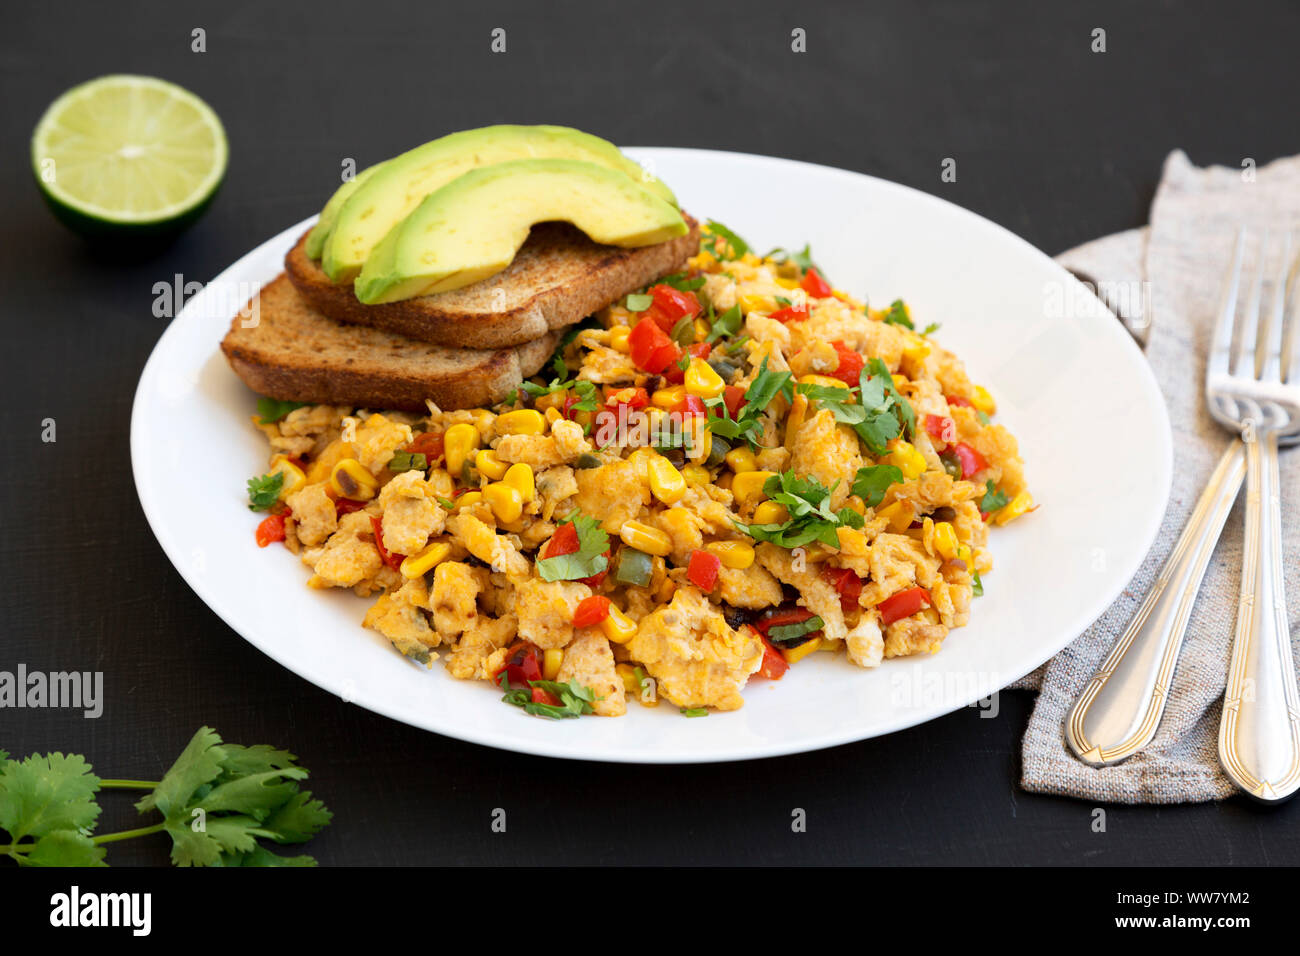 Homemade southwestern egg scramble with toast on a white plate on a black background, low angle view. Close-up. Stock Photo